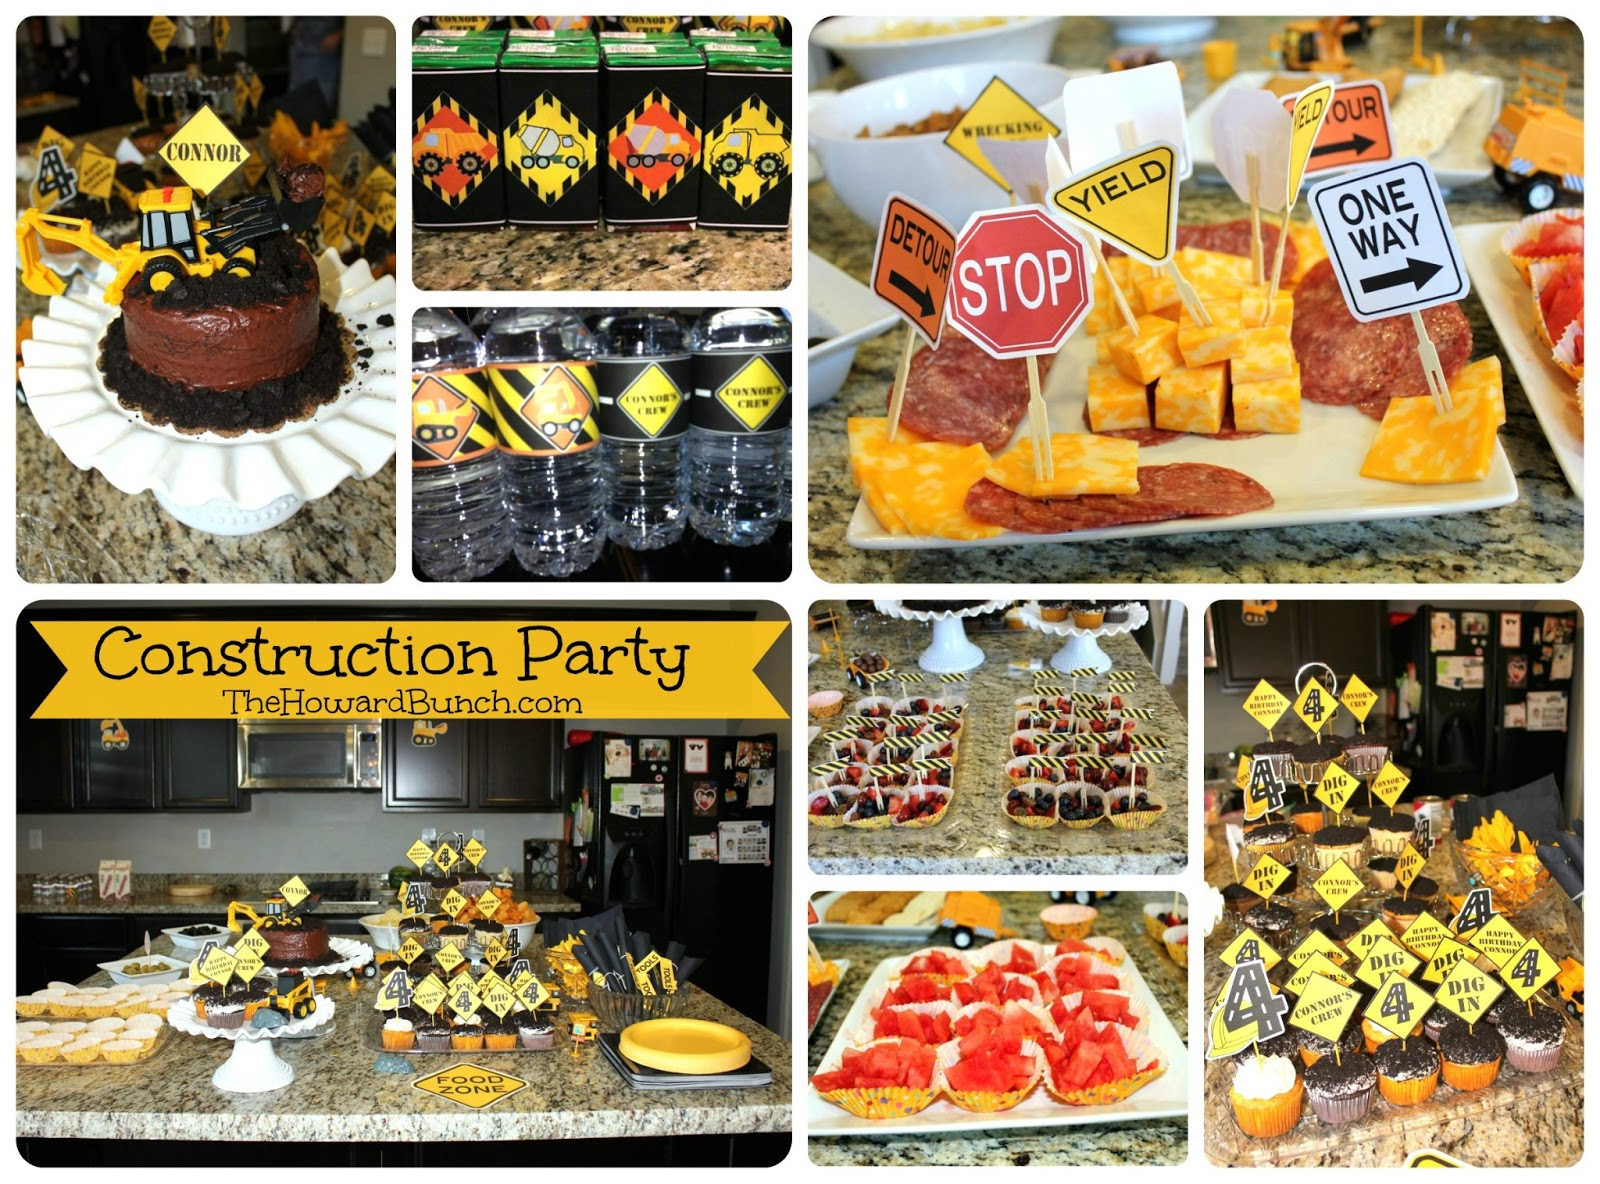 birthday picture ideas for adults - The Howard Bunch A Handmade Construction Party for a Four